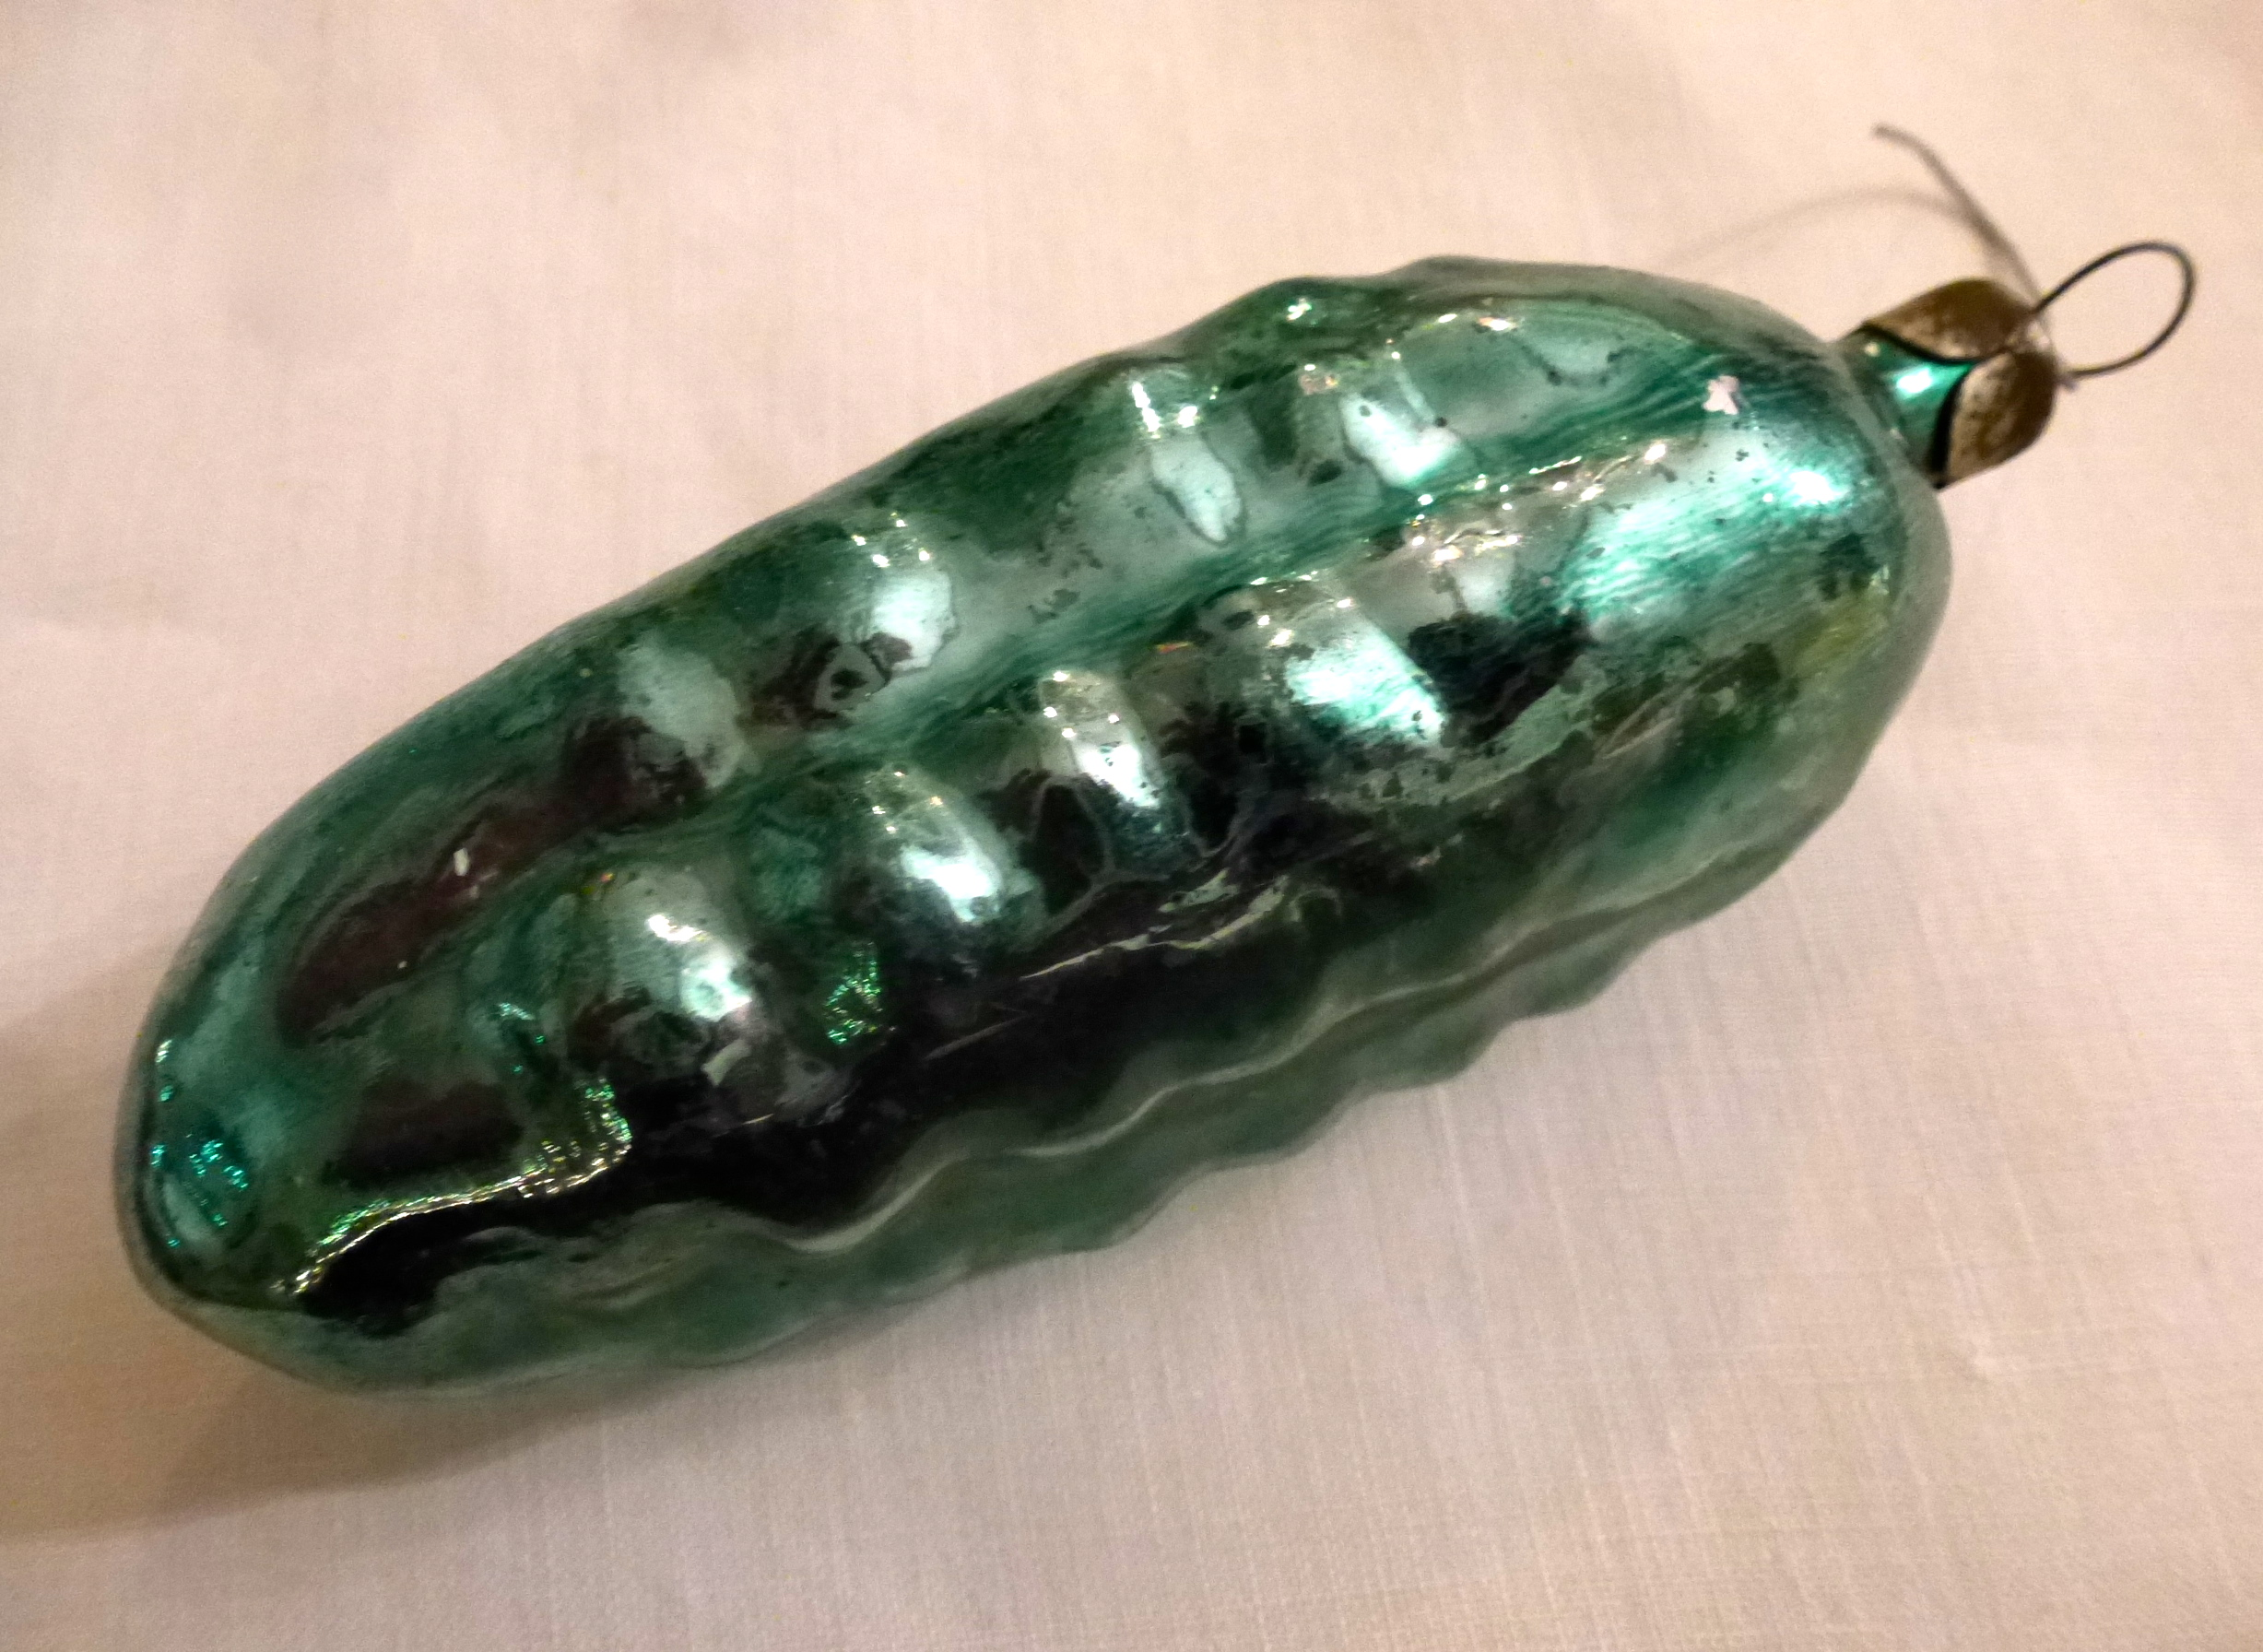 It Was Shaped Like A Pickle I'd Never Seen A Pickle Ornament Before It  Made Sense To See One In Hungary Hungarians Love Their Pickles